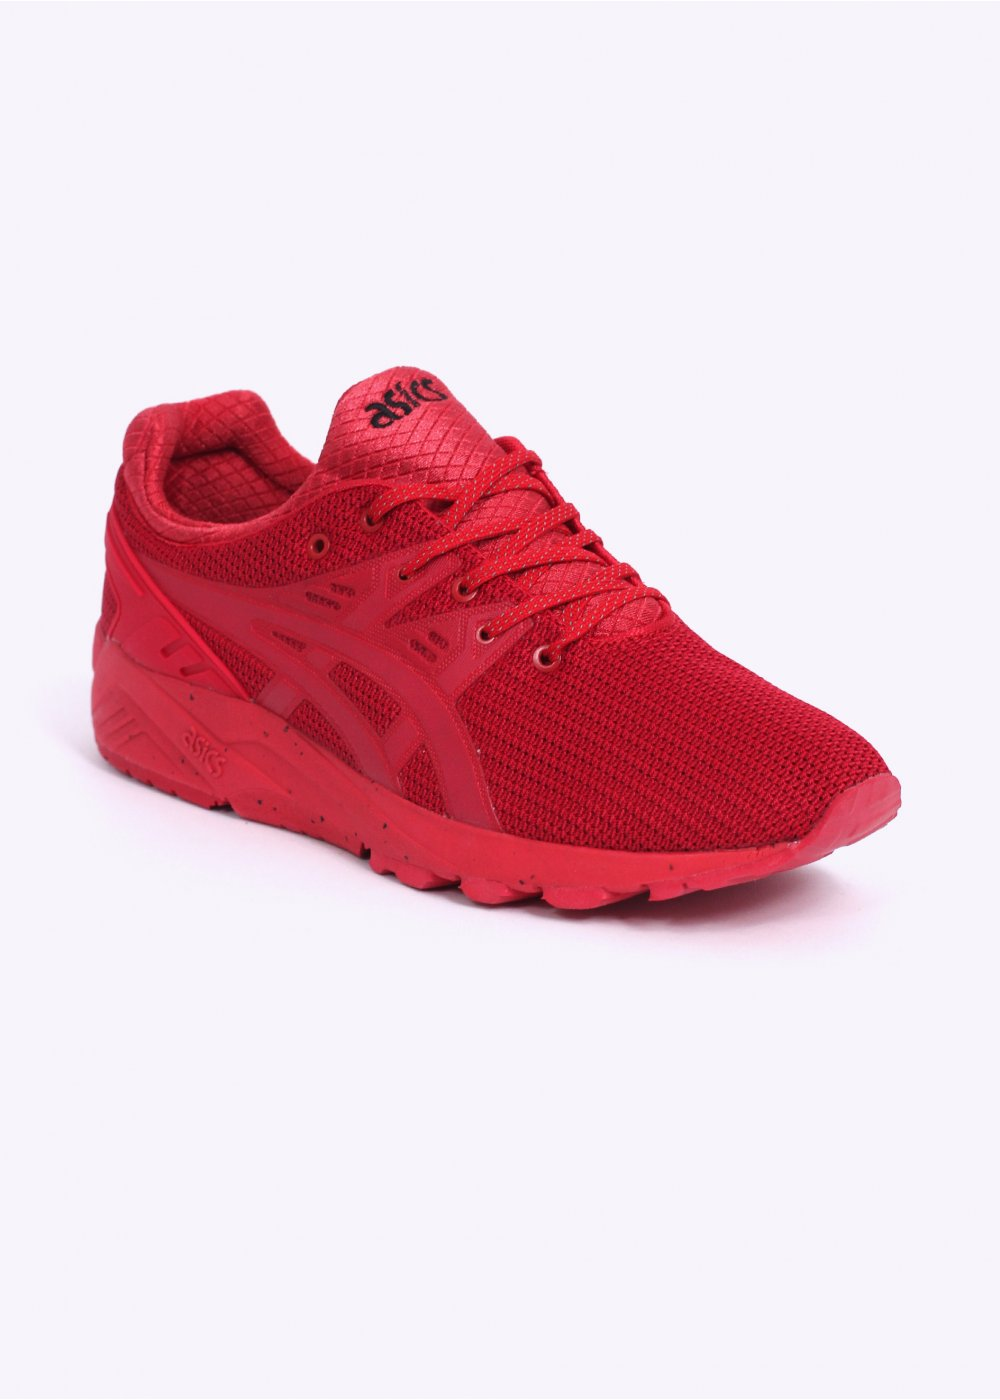 asics gel kayano evo trainers tech pack red. Black Bedroom Furniture Sets. Home Design Ideas